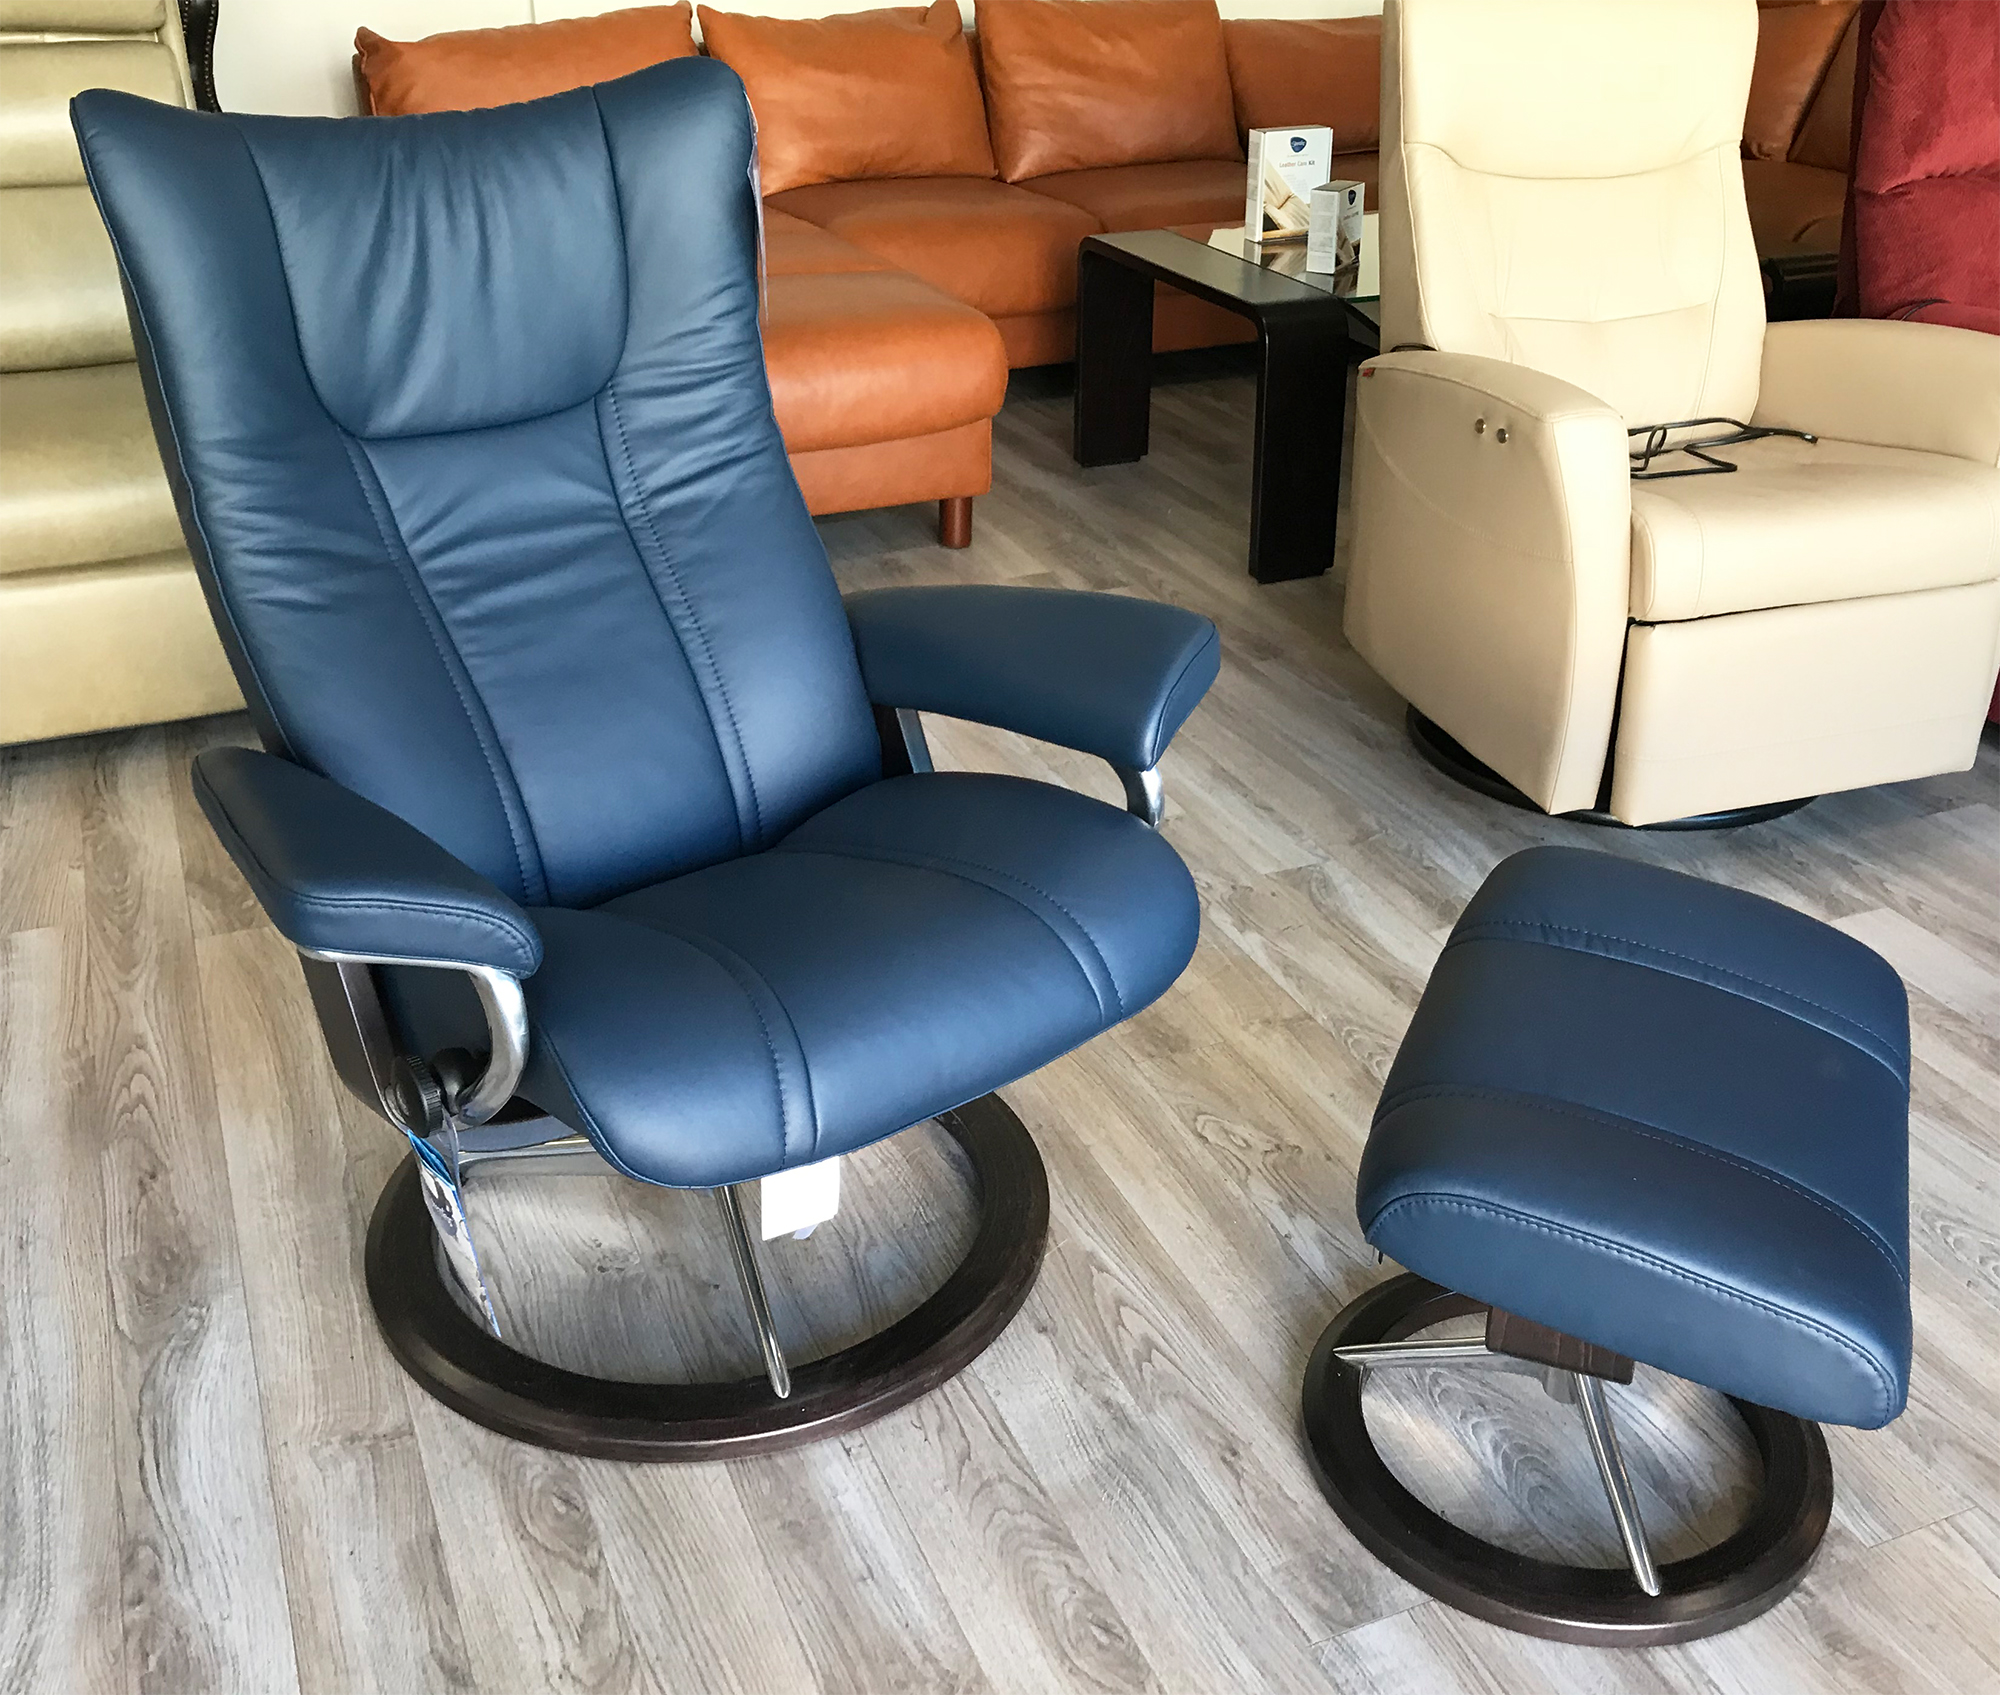 Incredible Stressless Wing Recliner Chair And Ottoman In Paloma Black Leather By Ekornes Ocoug Best Dining Table And Chair Ideas Images Ocougorg